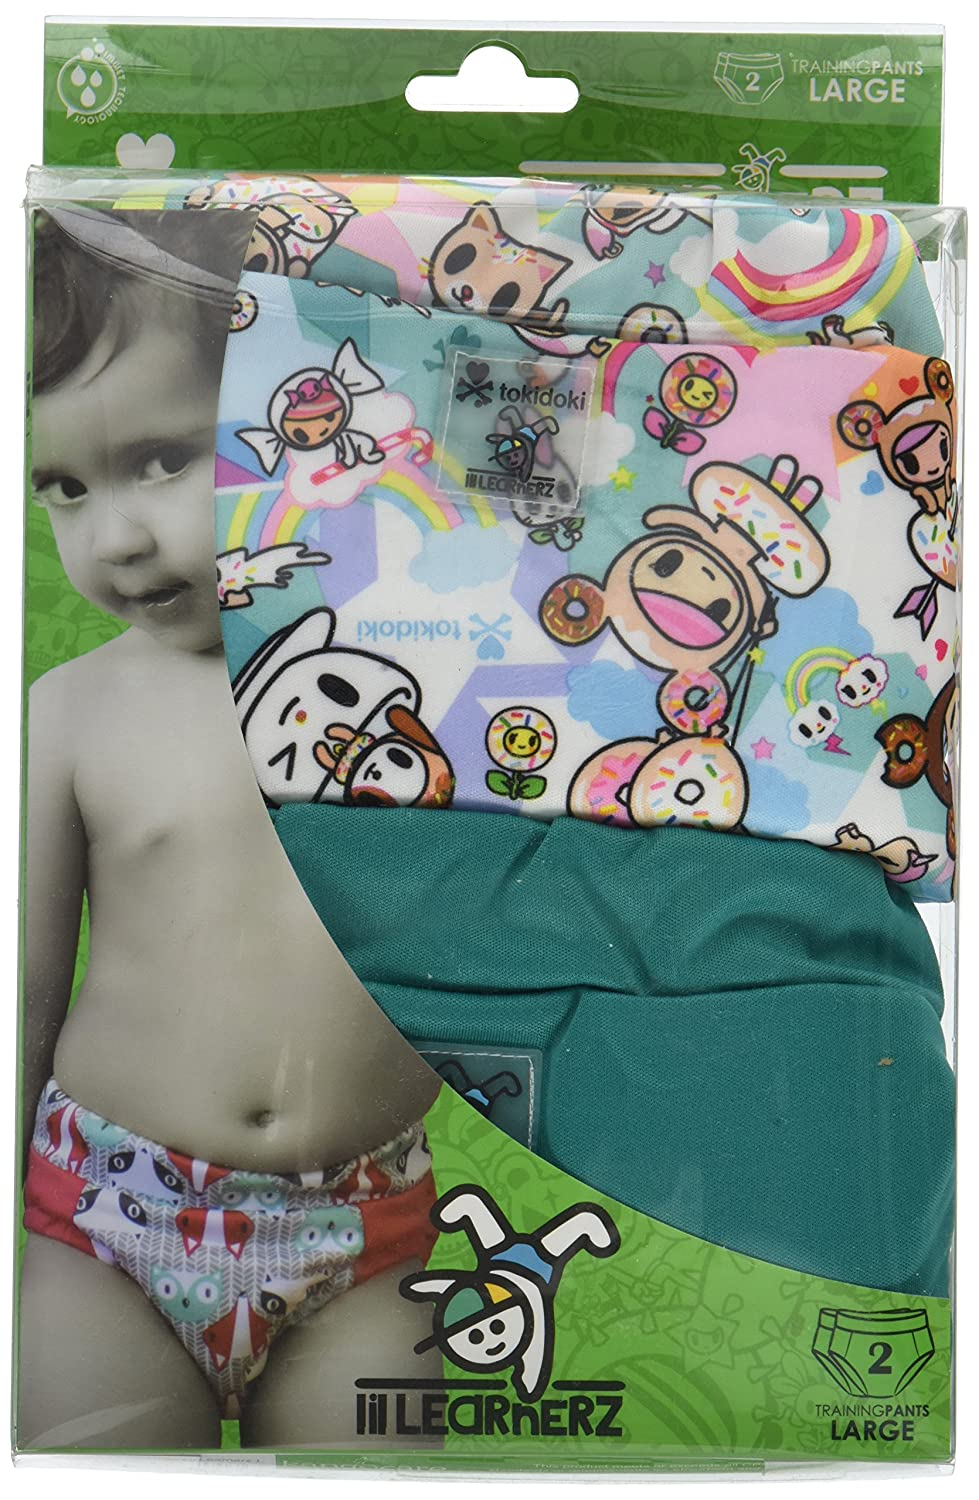 Kanga Care Lil Learnerz Training Nappies (Large, tokiSweet and Peacock) Danawares KRLLNZ_LG-M406